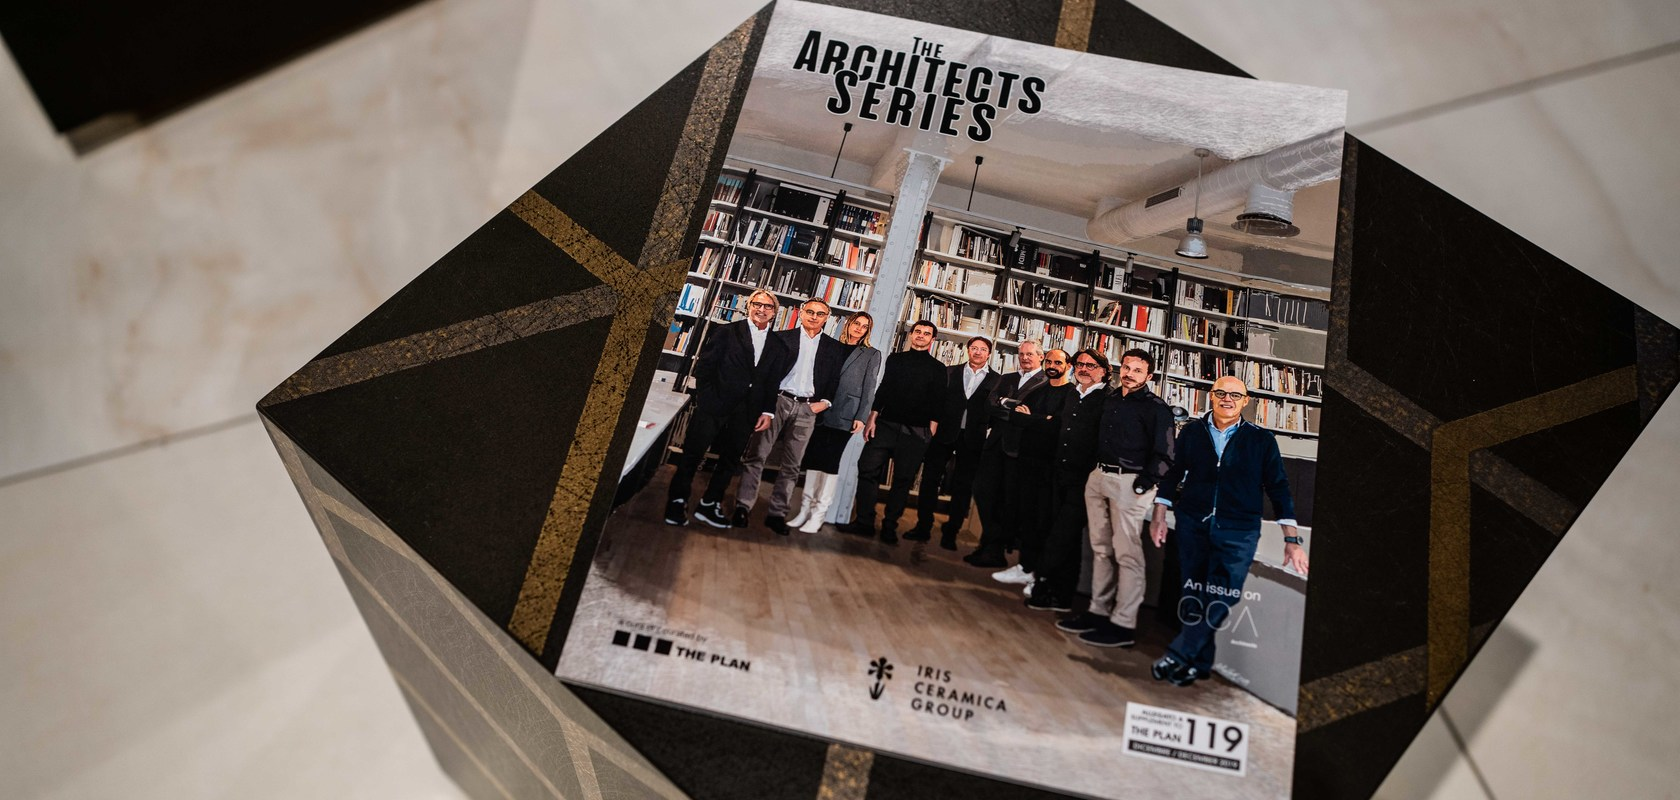 THE ARCHITECTS SERIES – A DOCUMENTARY ON: GCA Architects